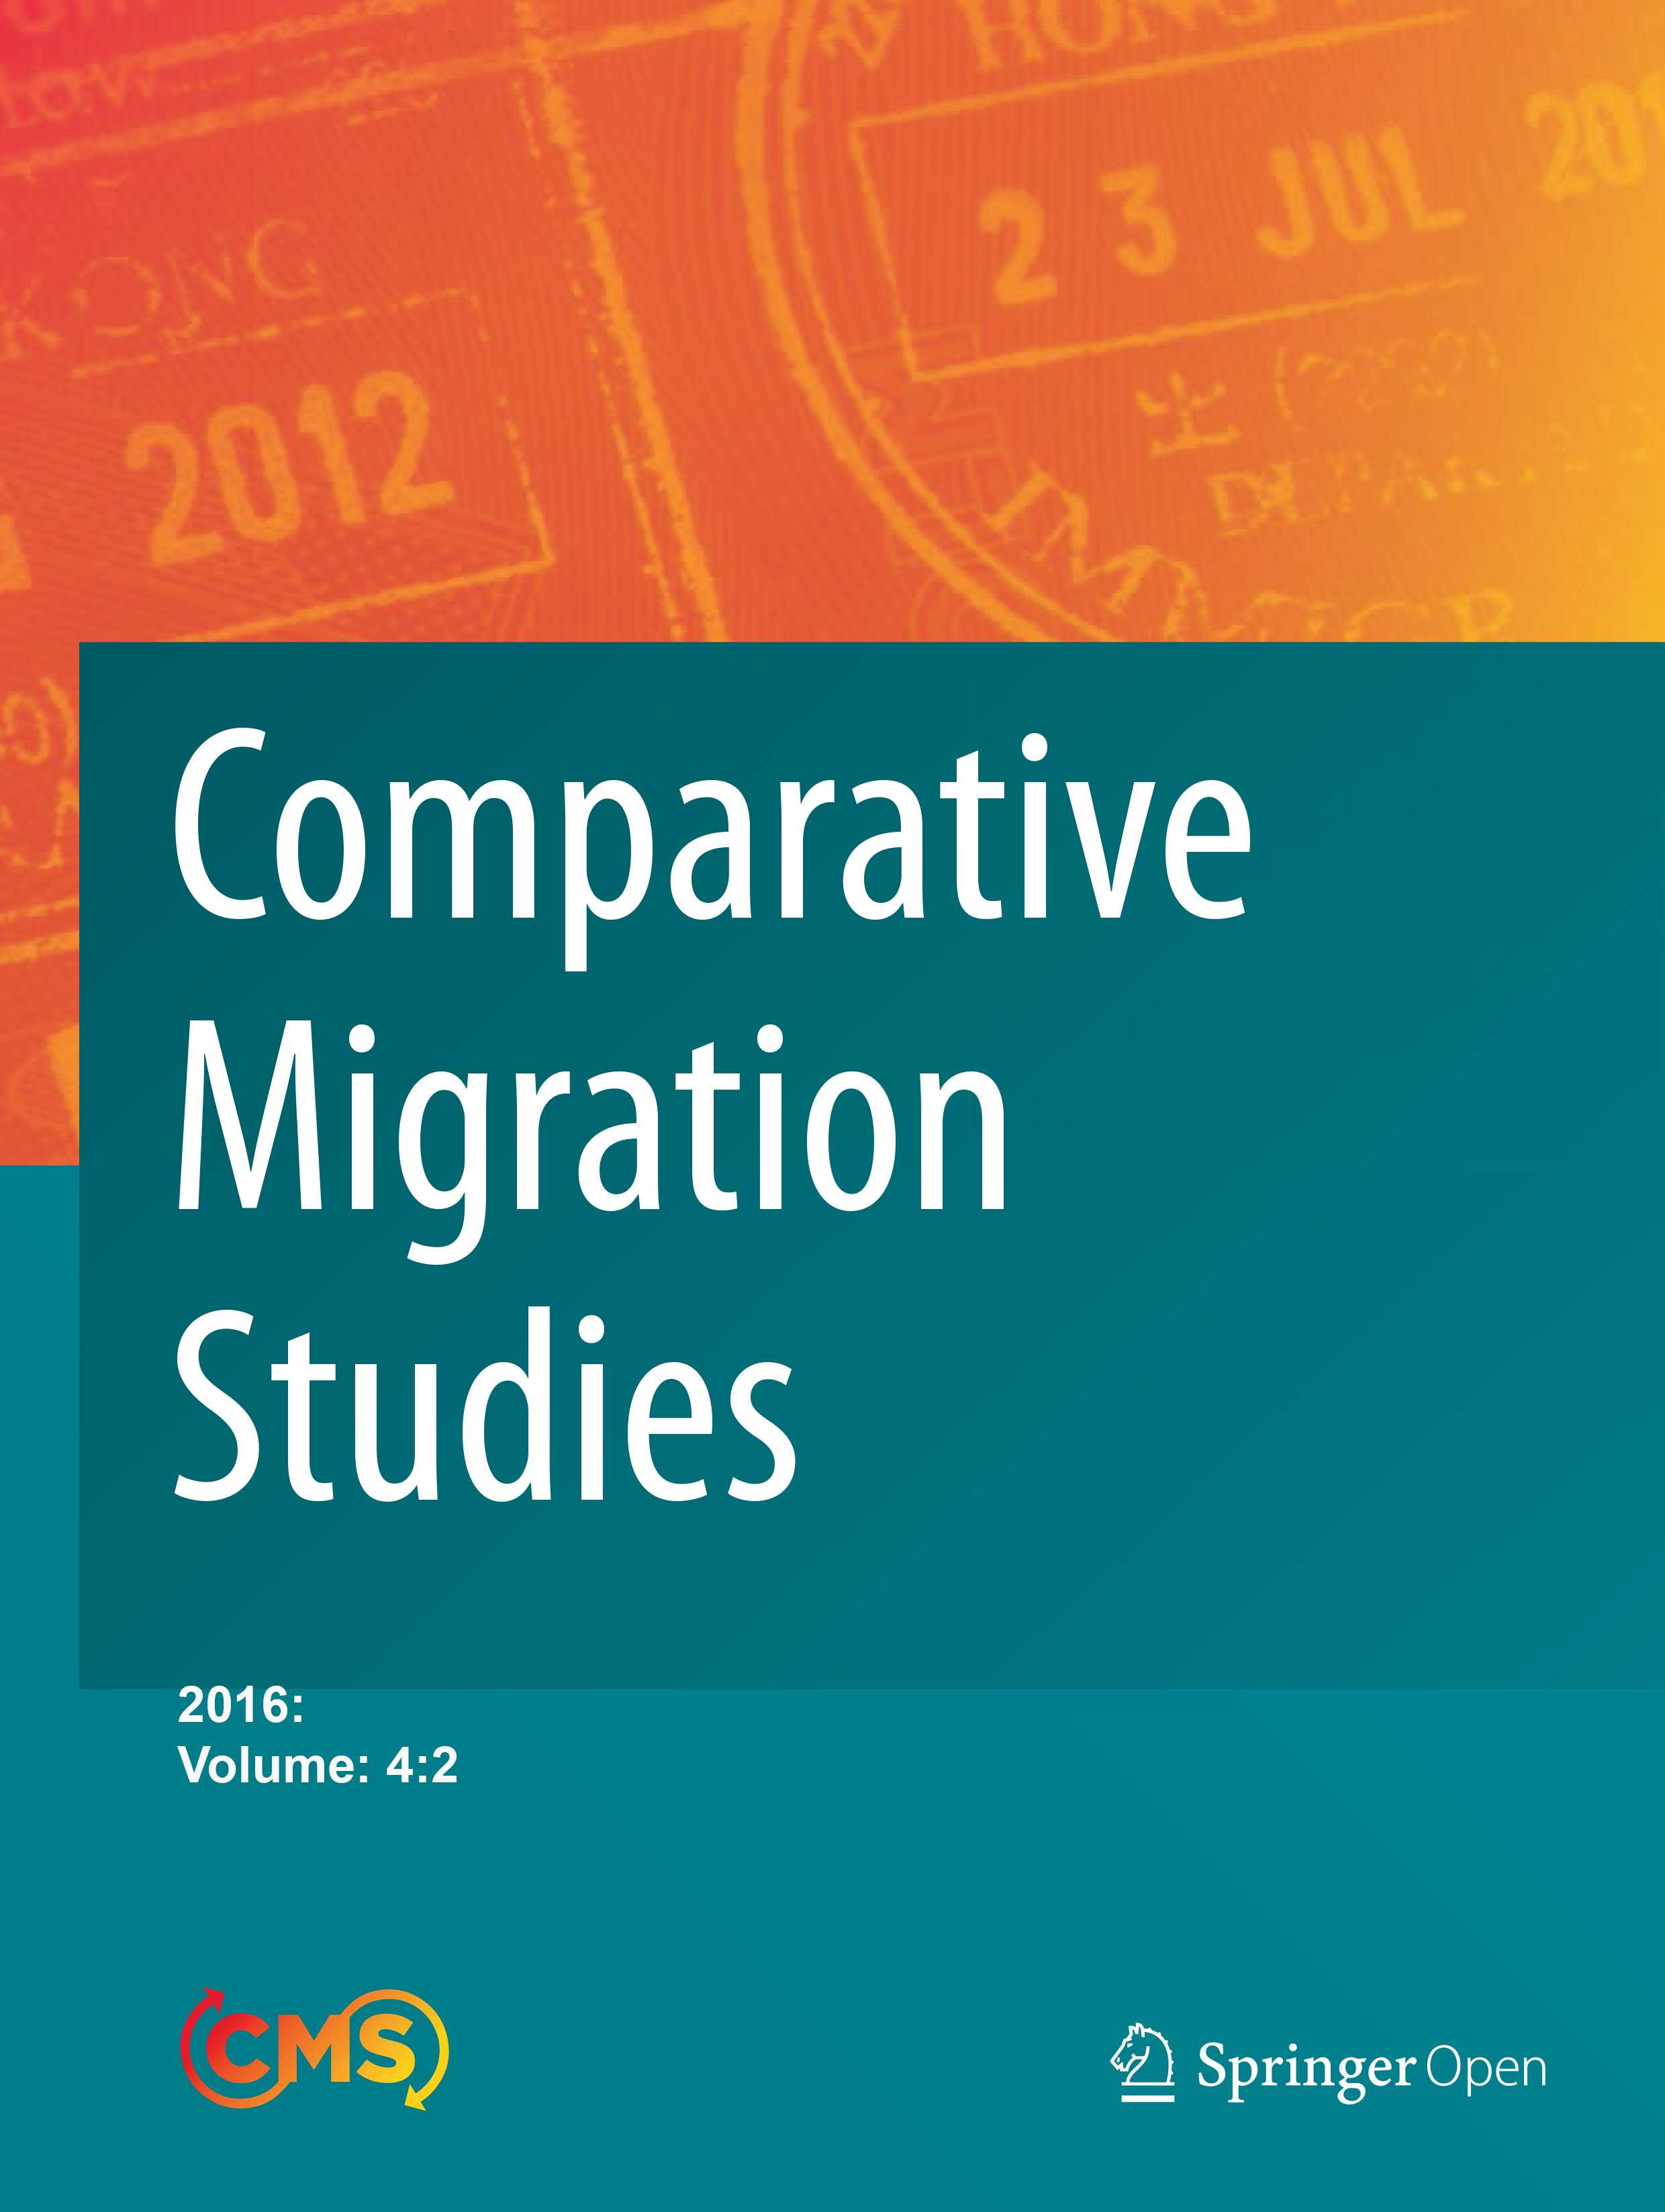 Comparative Migration Studies, Vol. 4, No. 2